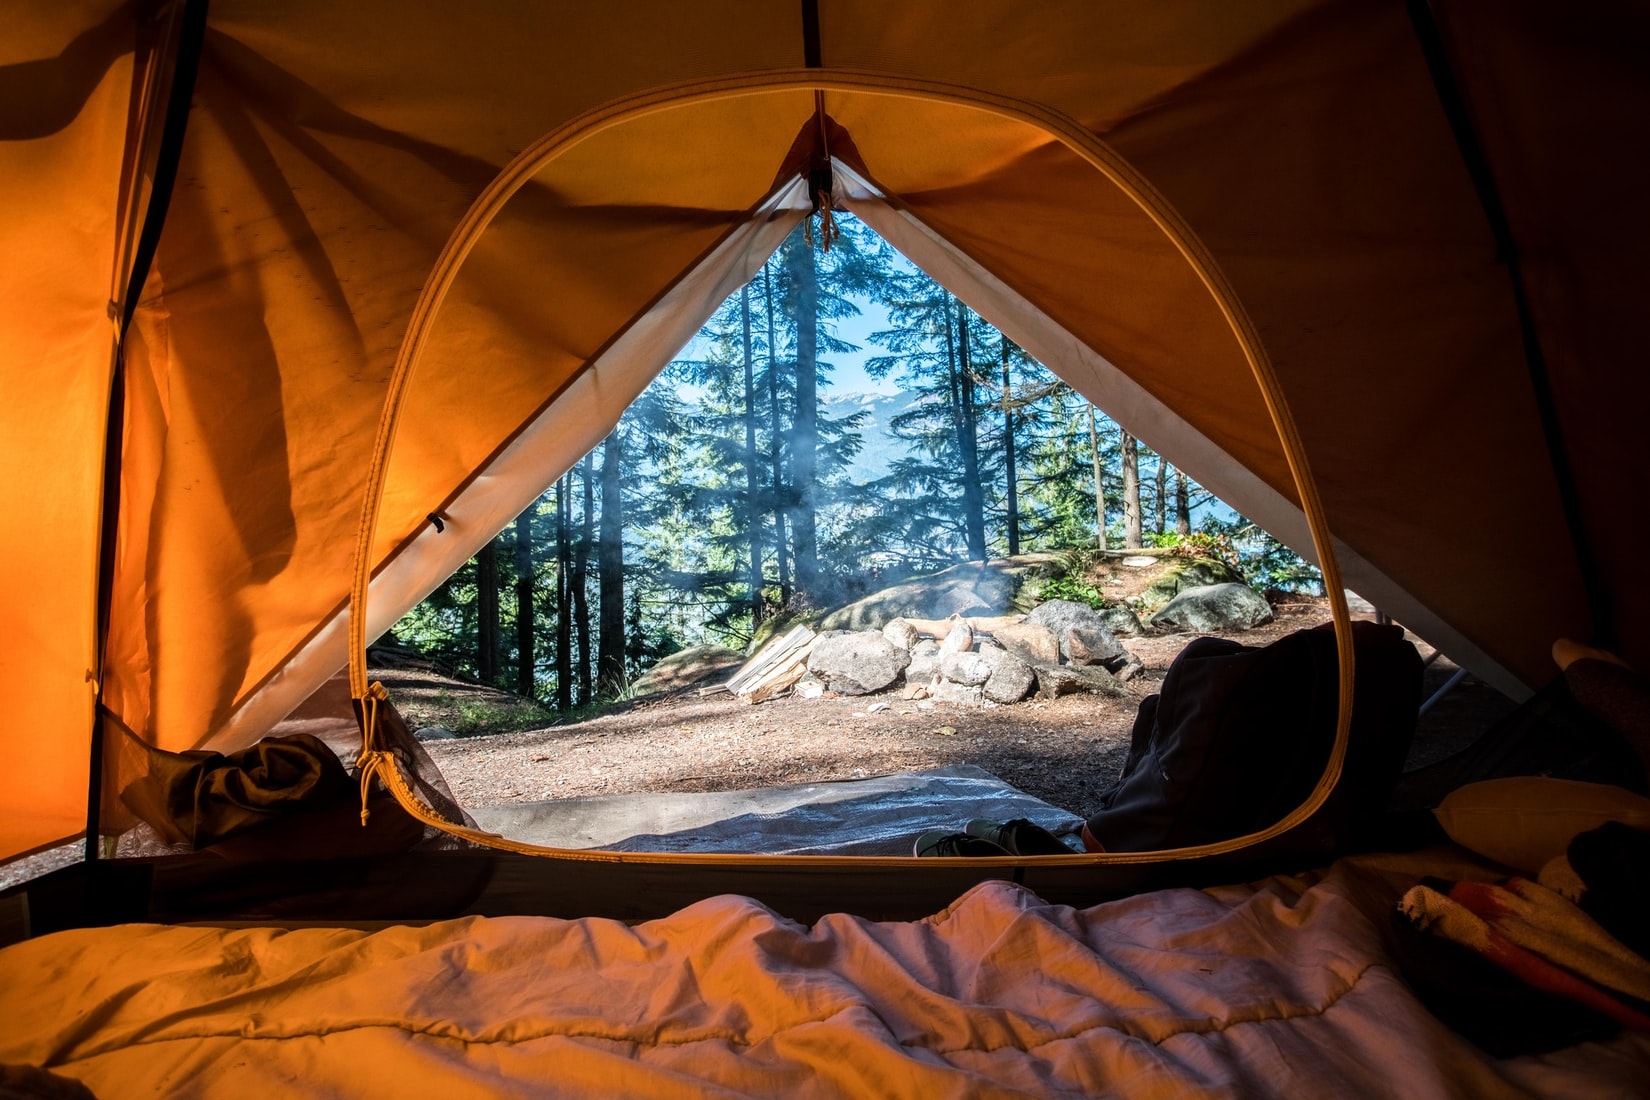 GLAMPING – CREATIVE ACCOMMODATION IN CAMPING RESORTS: INSIGHTS AND OPPORTUNITIES